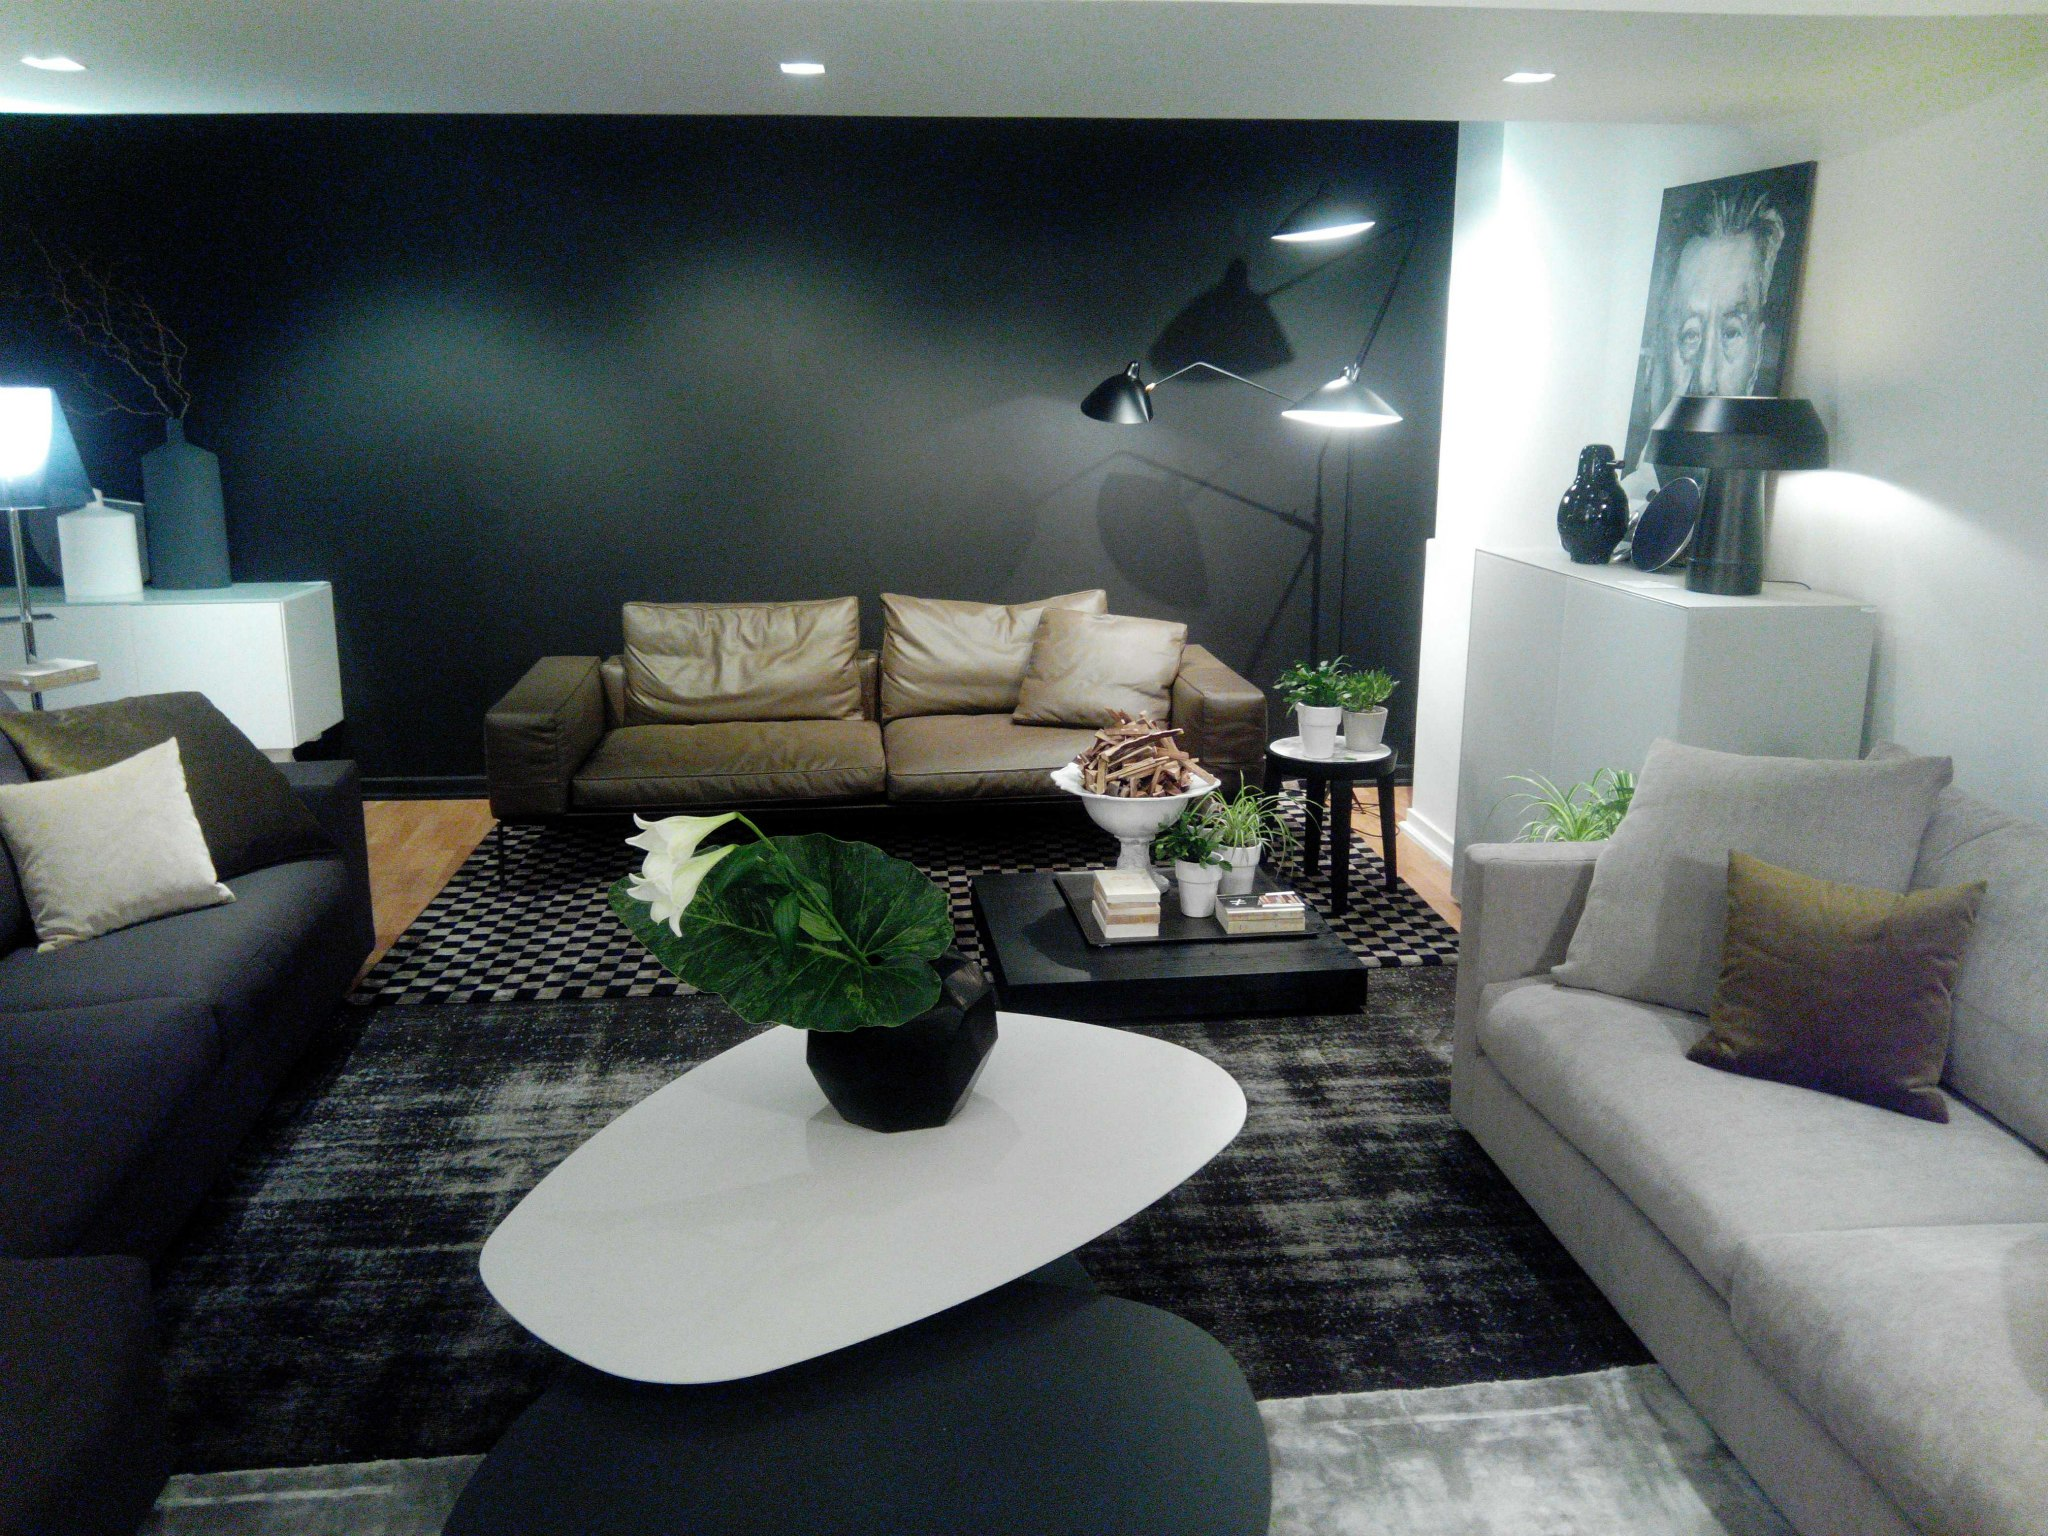 design tour 2013 mon prix coup de c ur blogueur deco. Black Bedroom Furniture Sets. Home Design Ideas